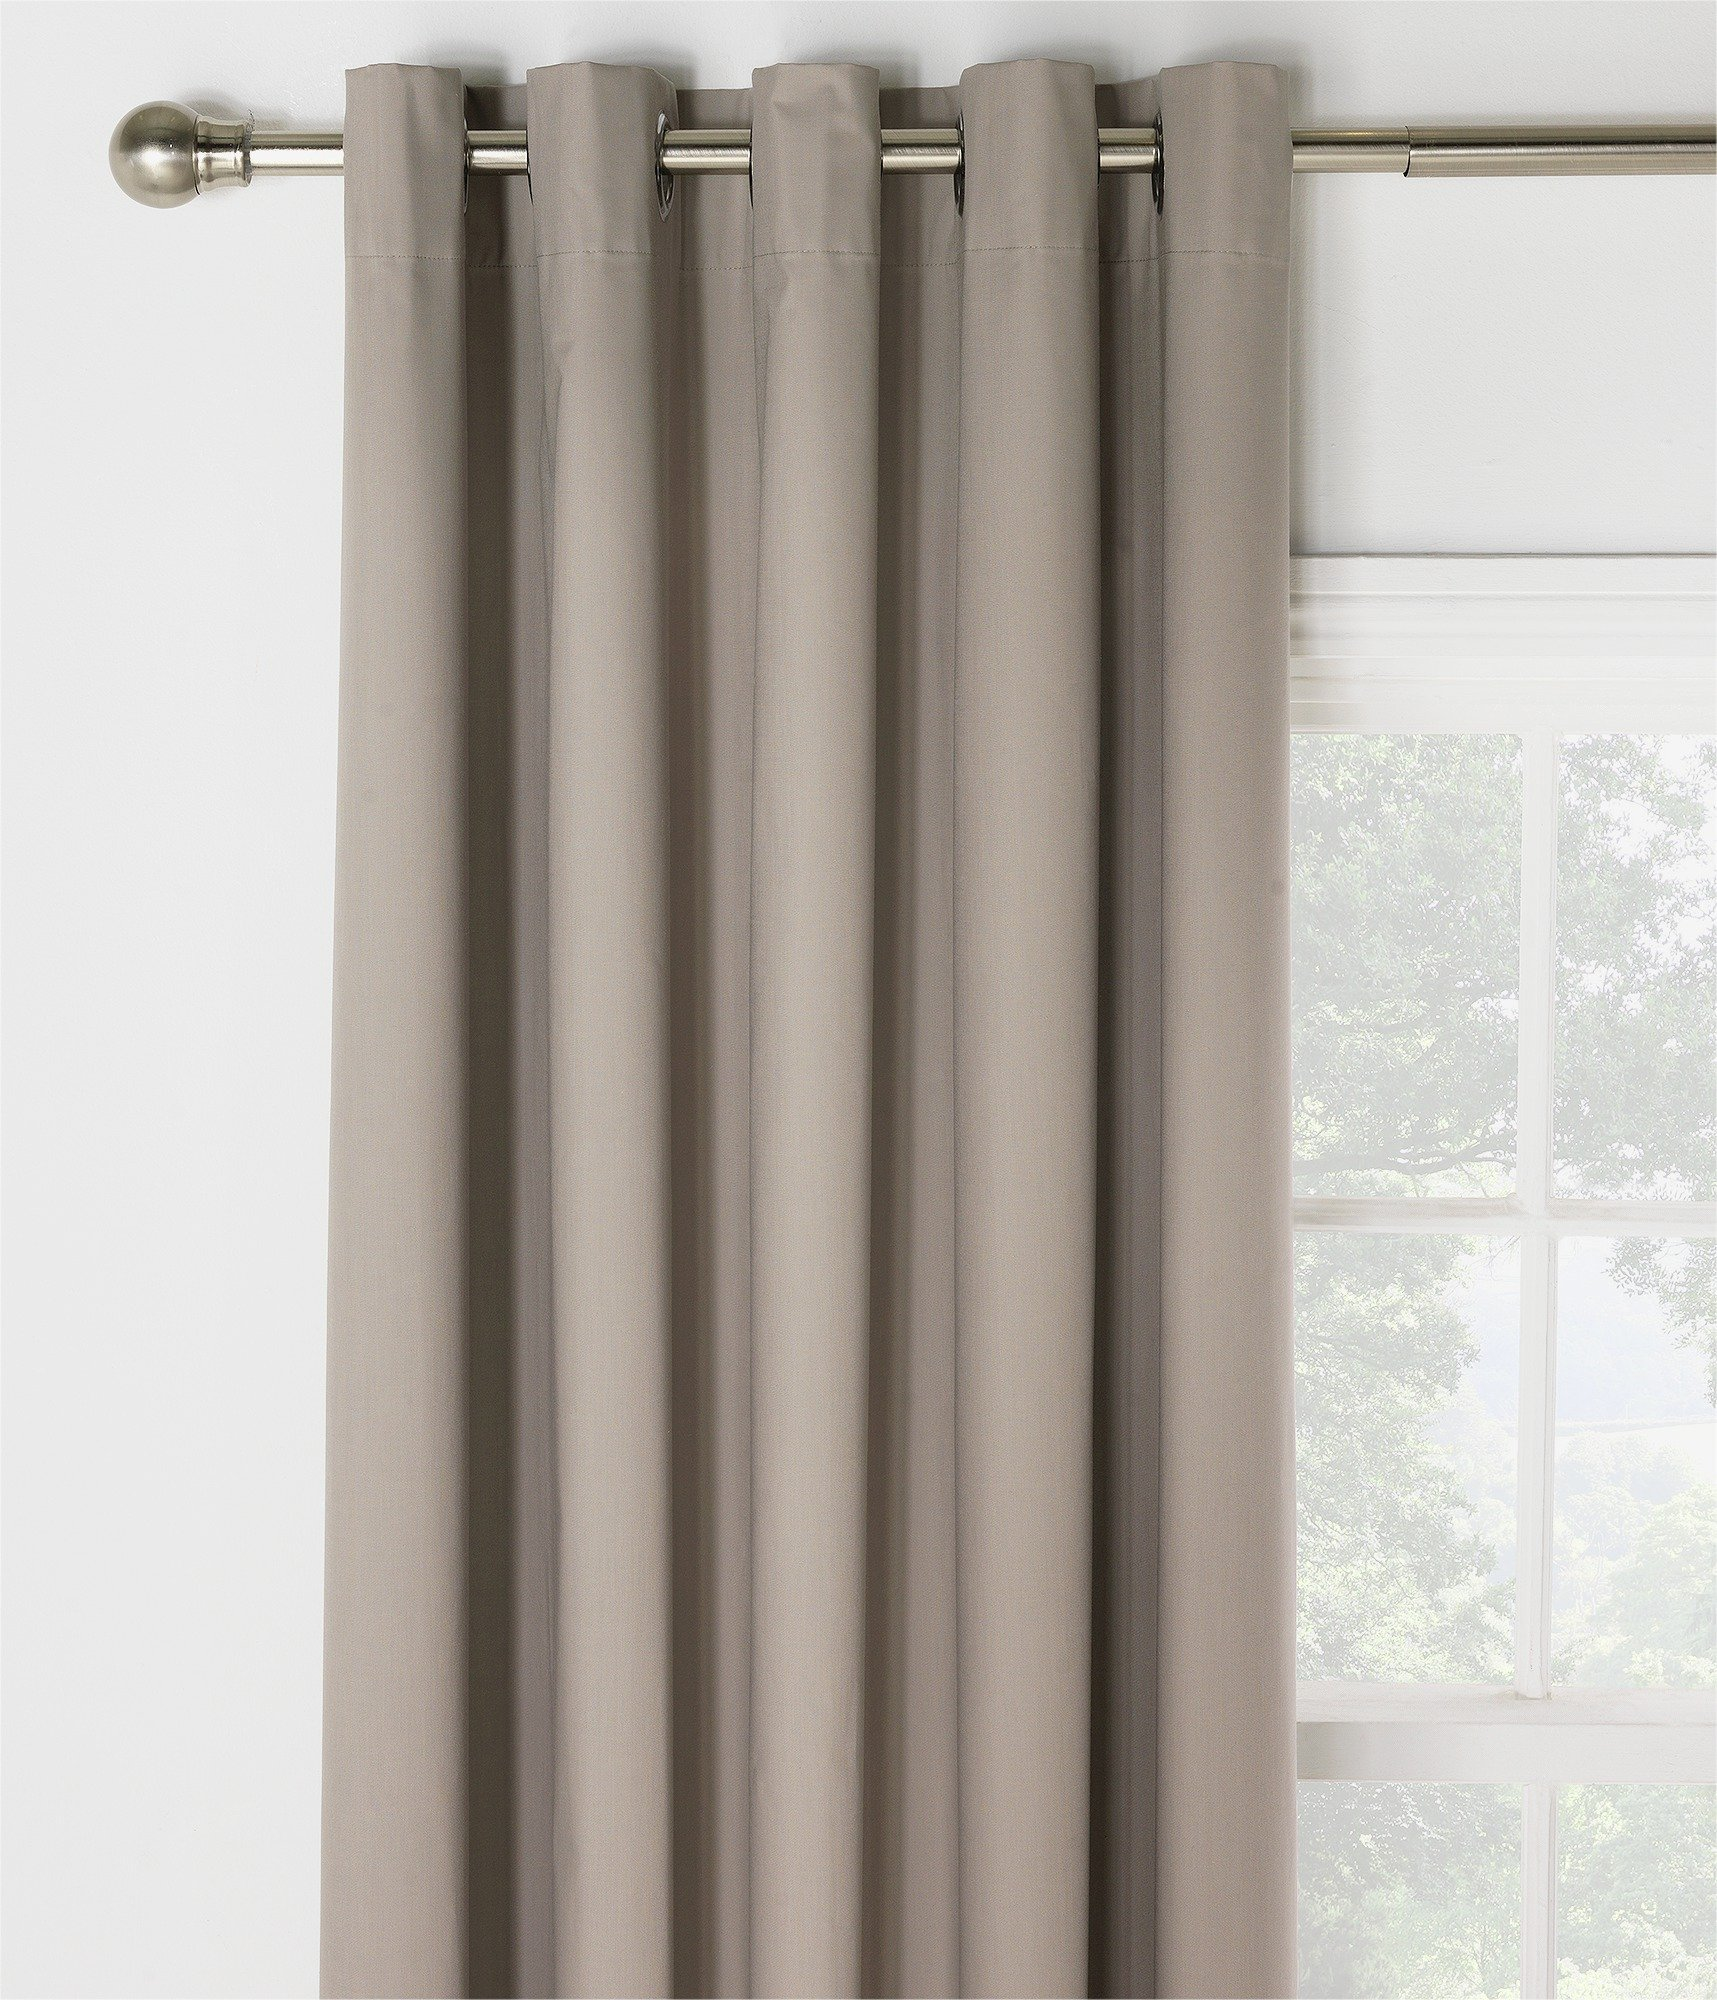 Image of HOME Blackout Thermal Curtains - 229x229cm - Cafe Mocha